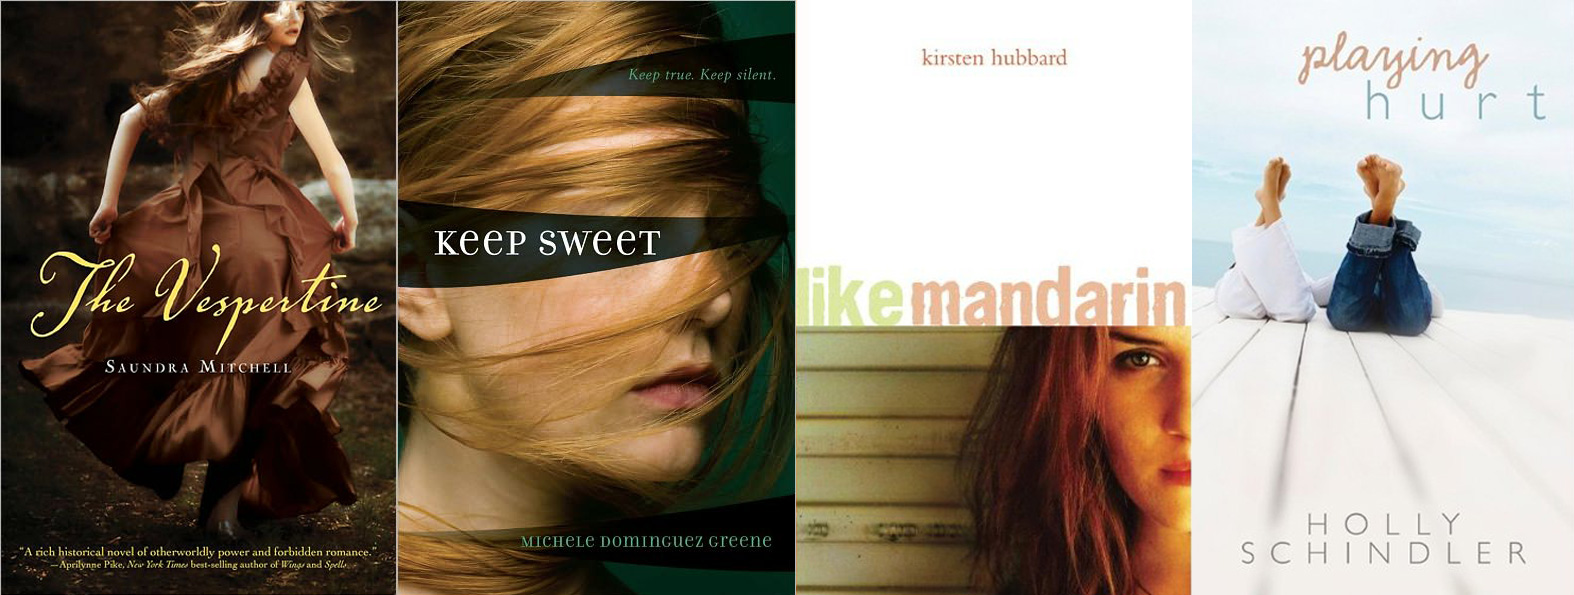 New Reads: March 6-12, 2011